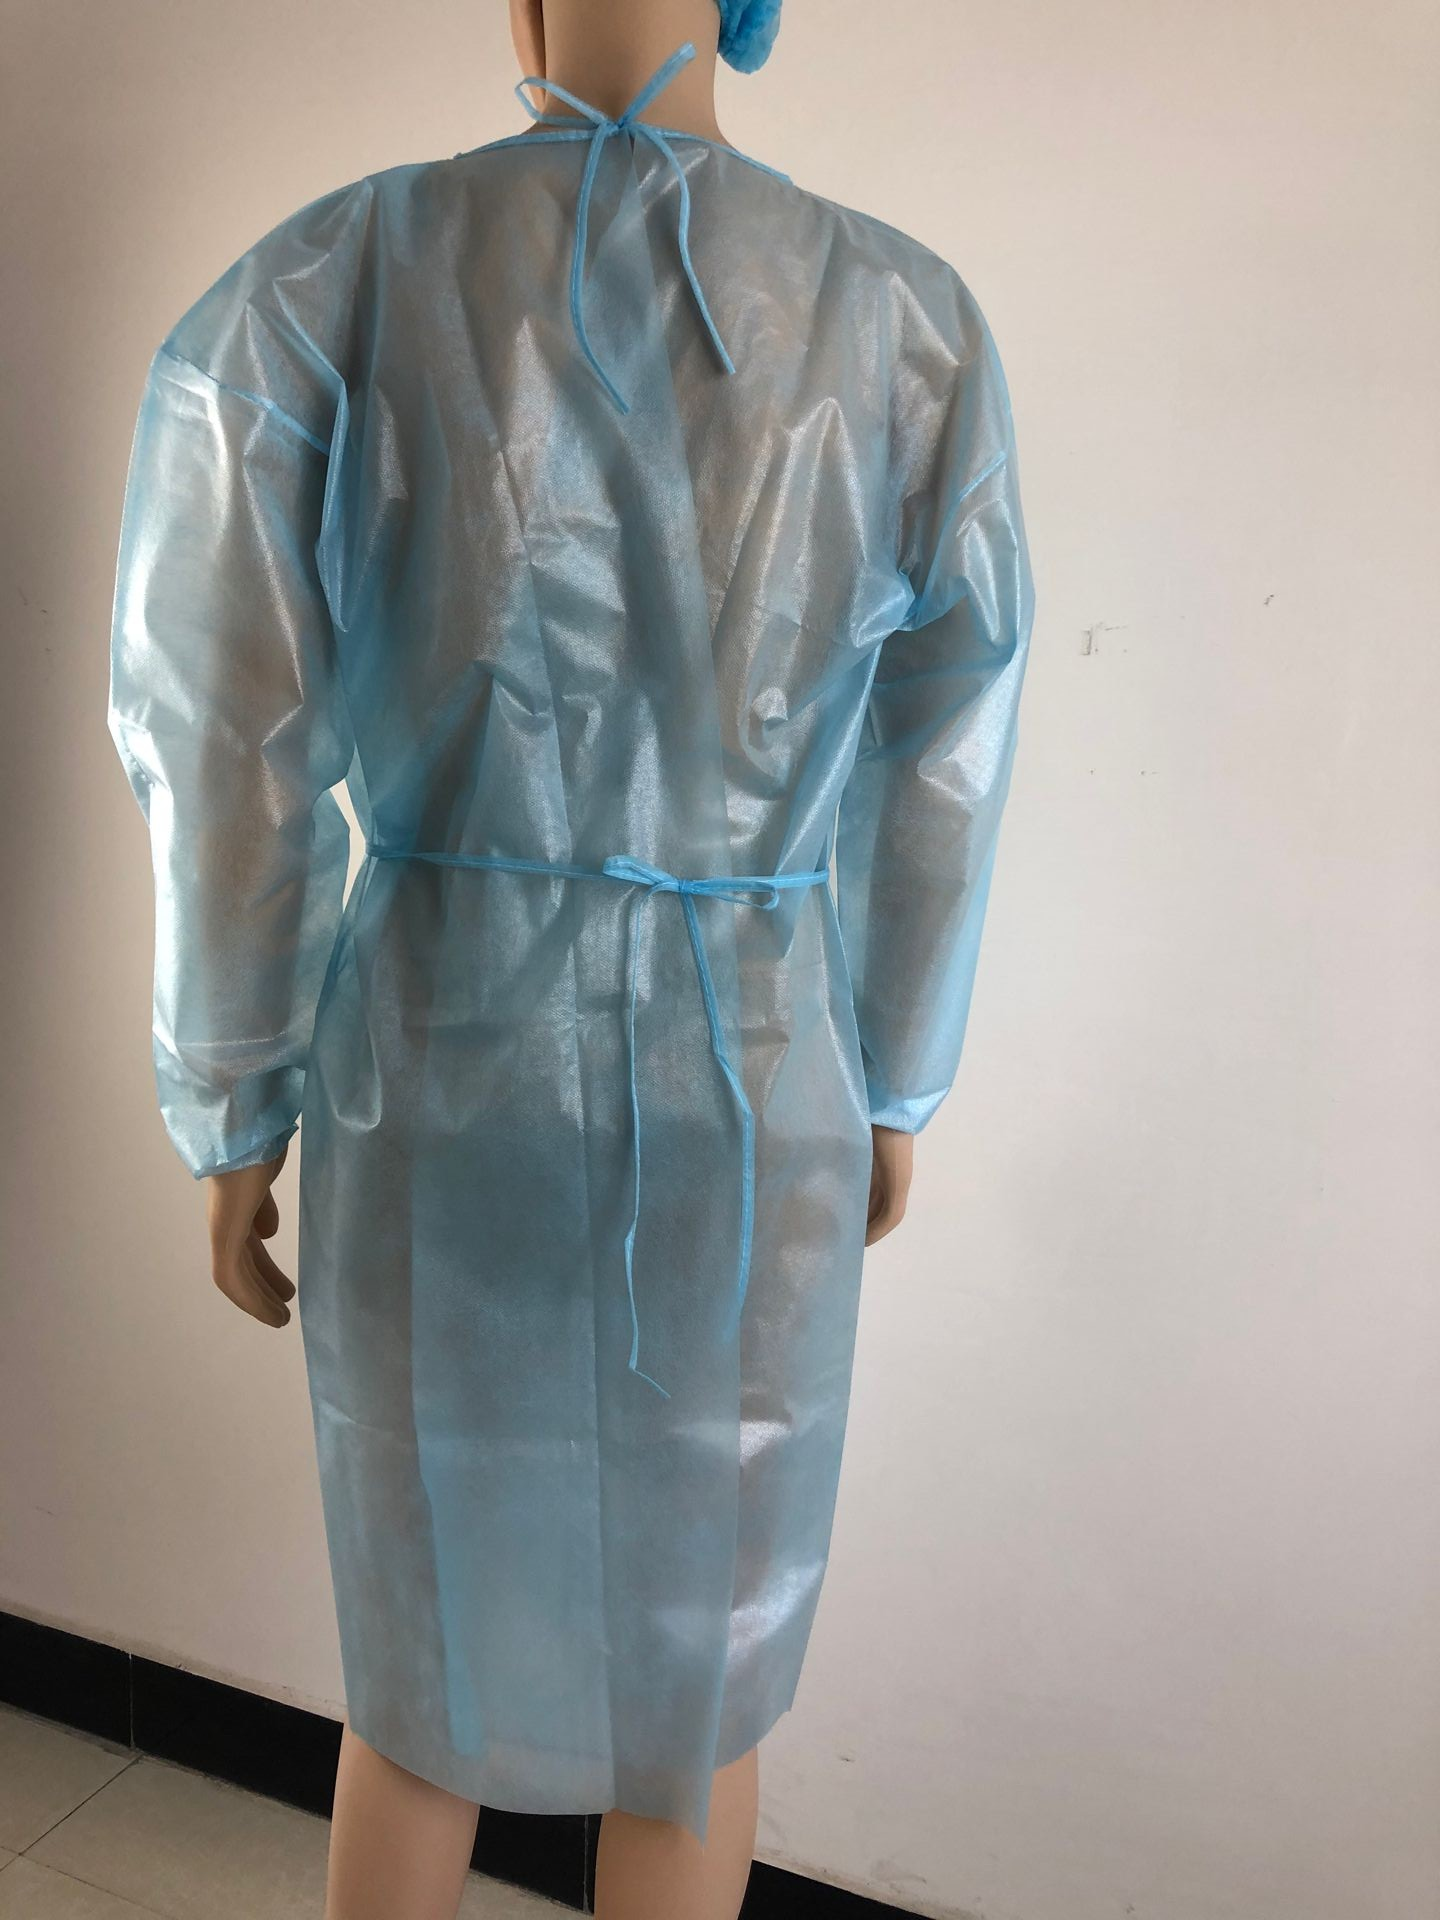 pp-pe-isolation-gown-1-.jpg